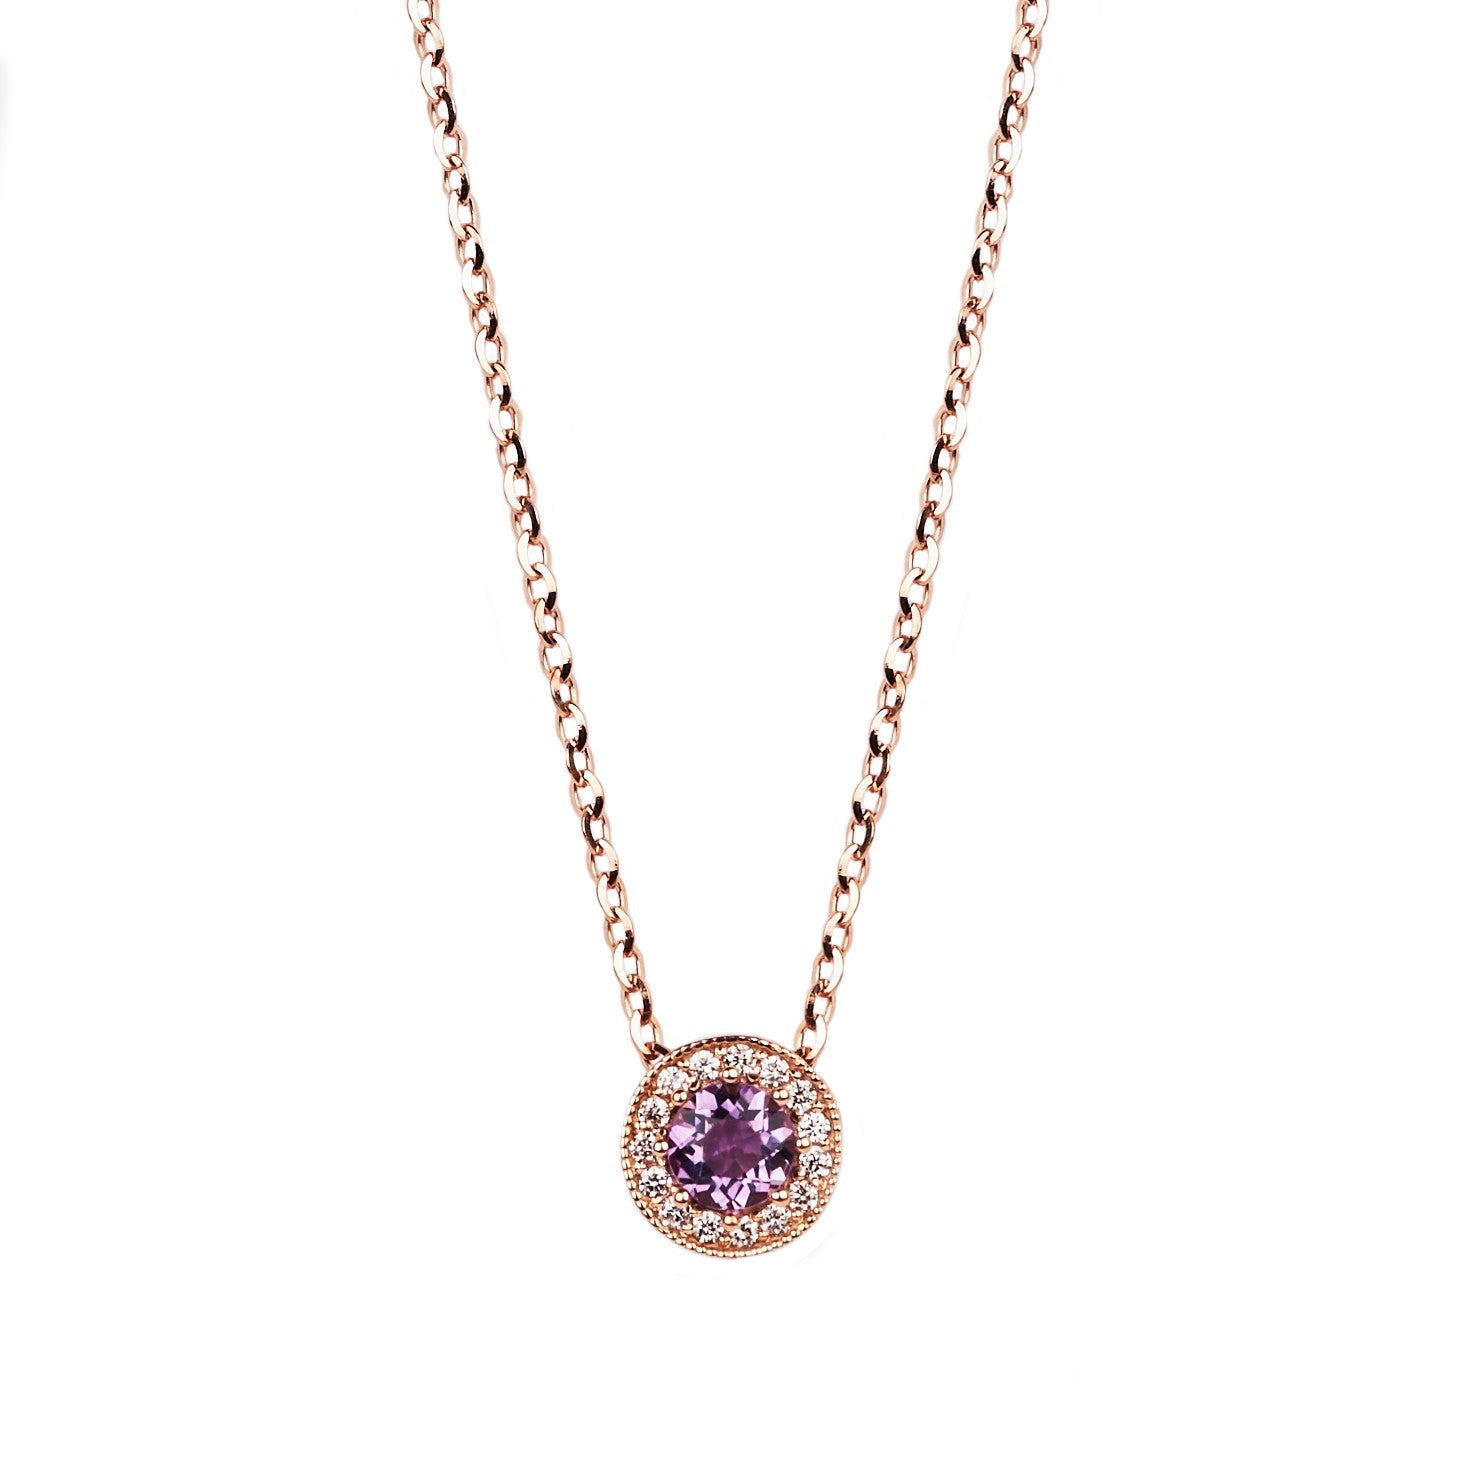 Gemstone and Diamond Necklace